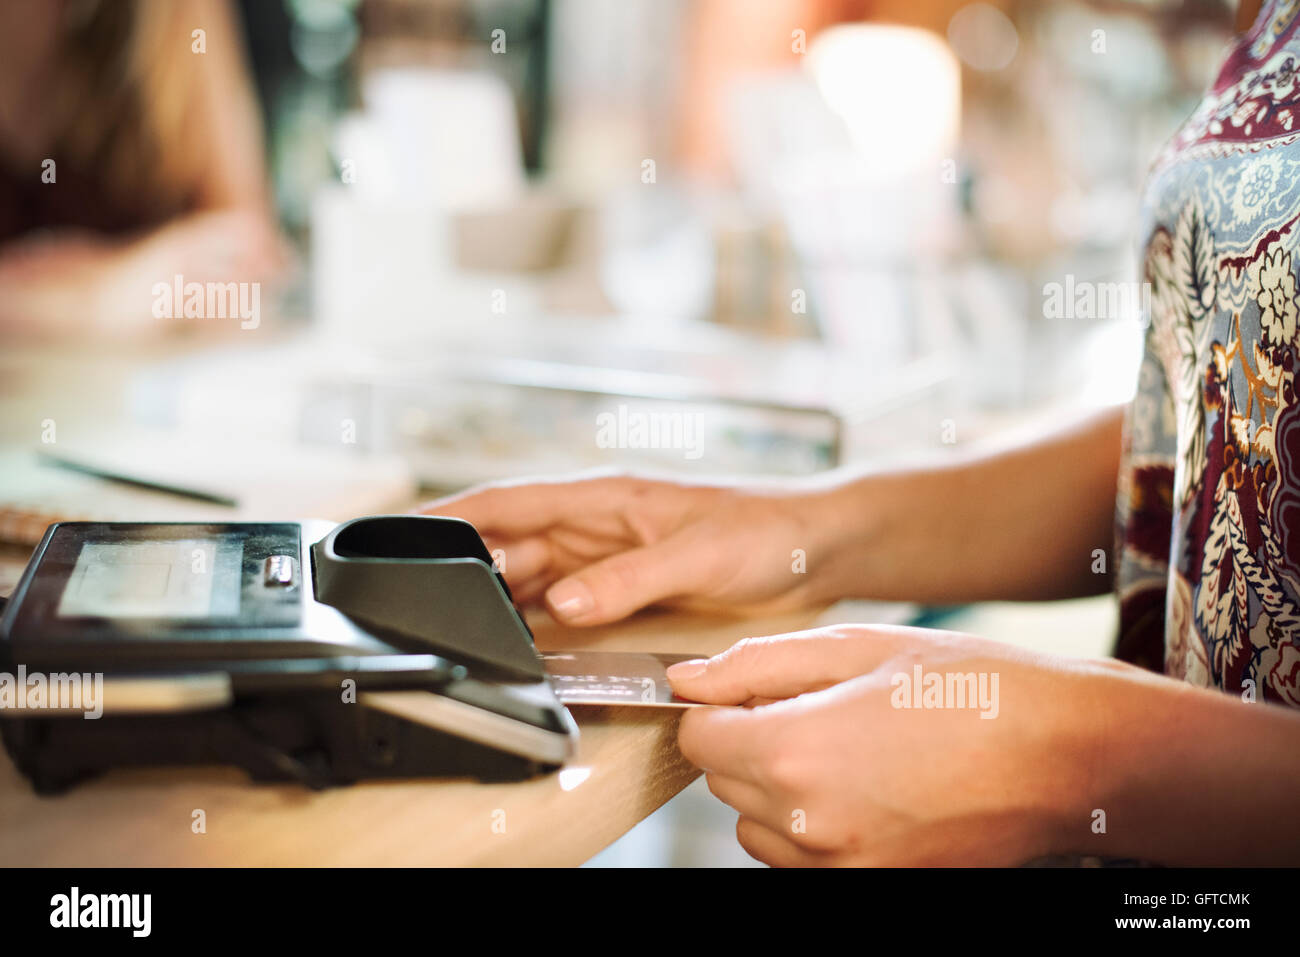 Close up of a woman using a credit card reader in a shop - Stock Image